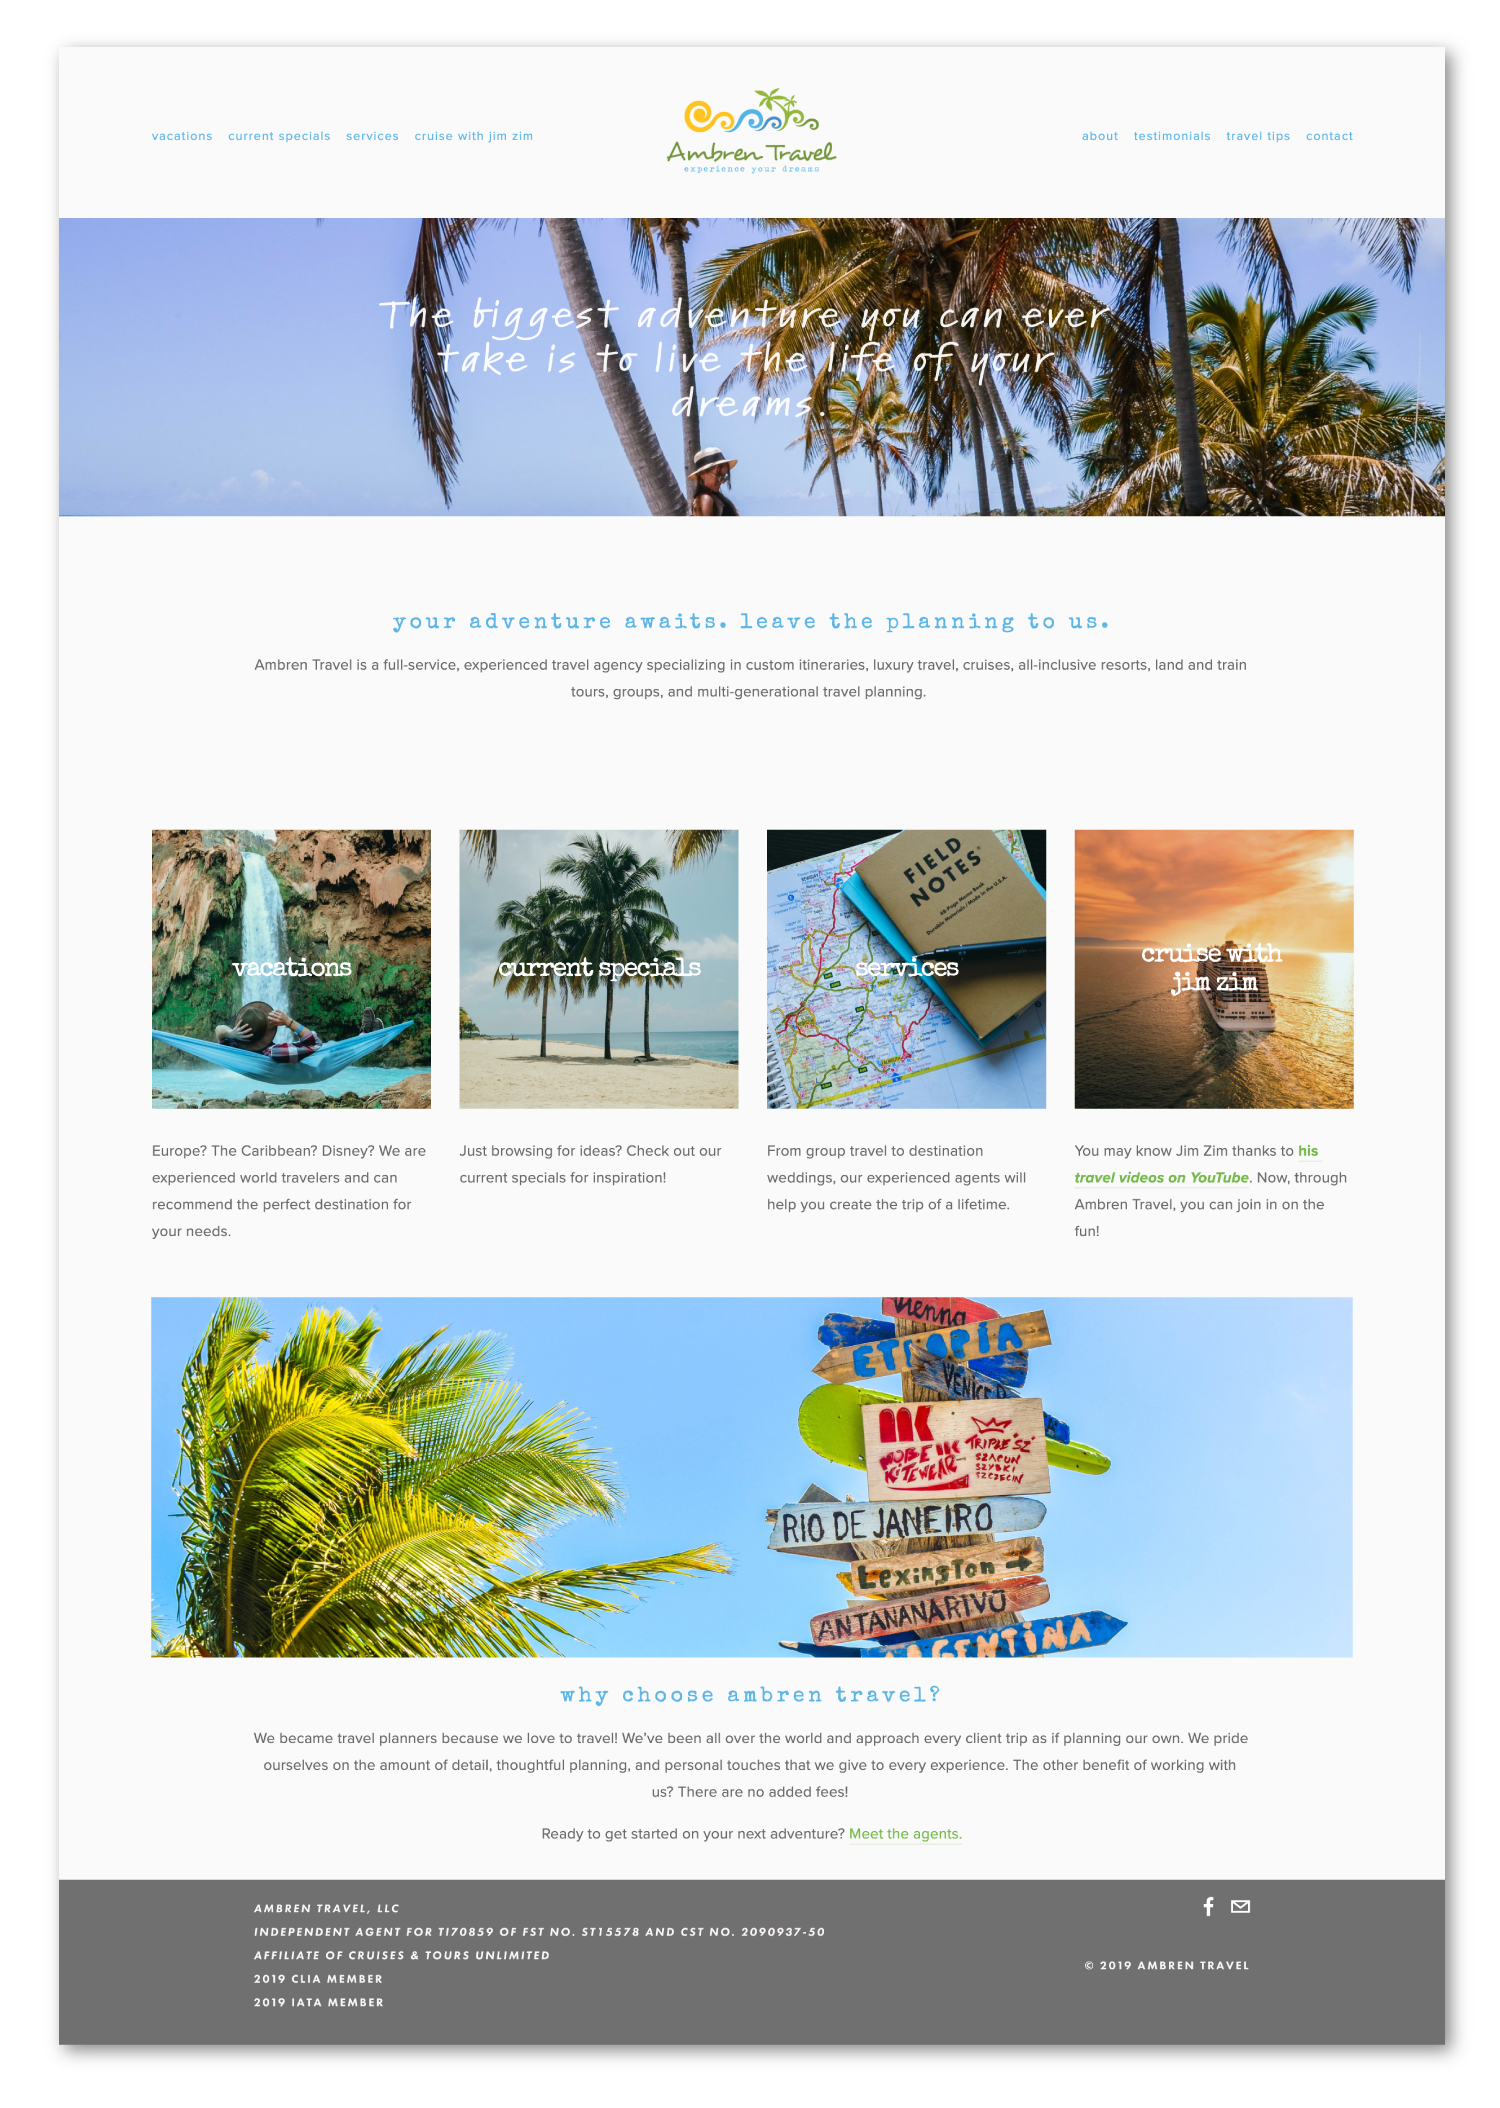 Ambren-Travel-Website-Design.png